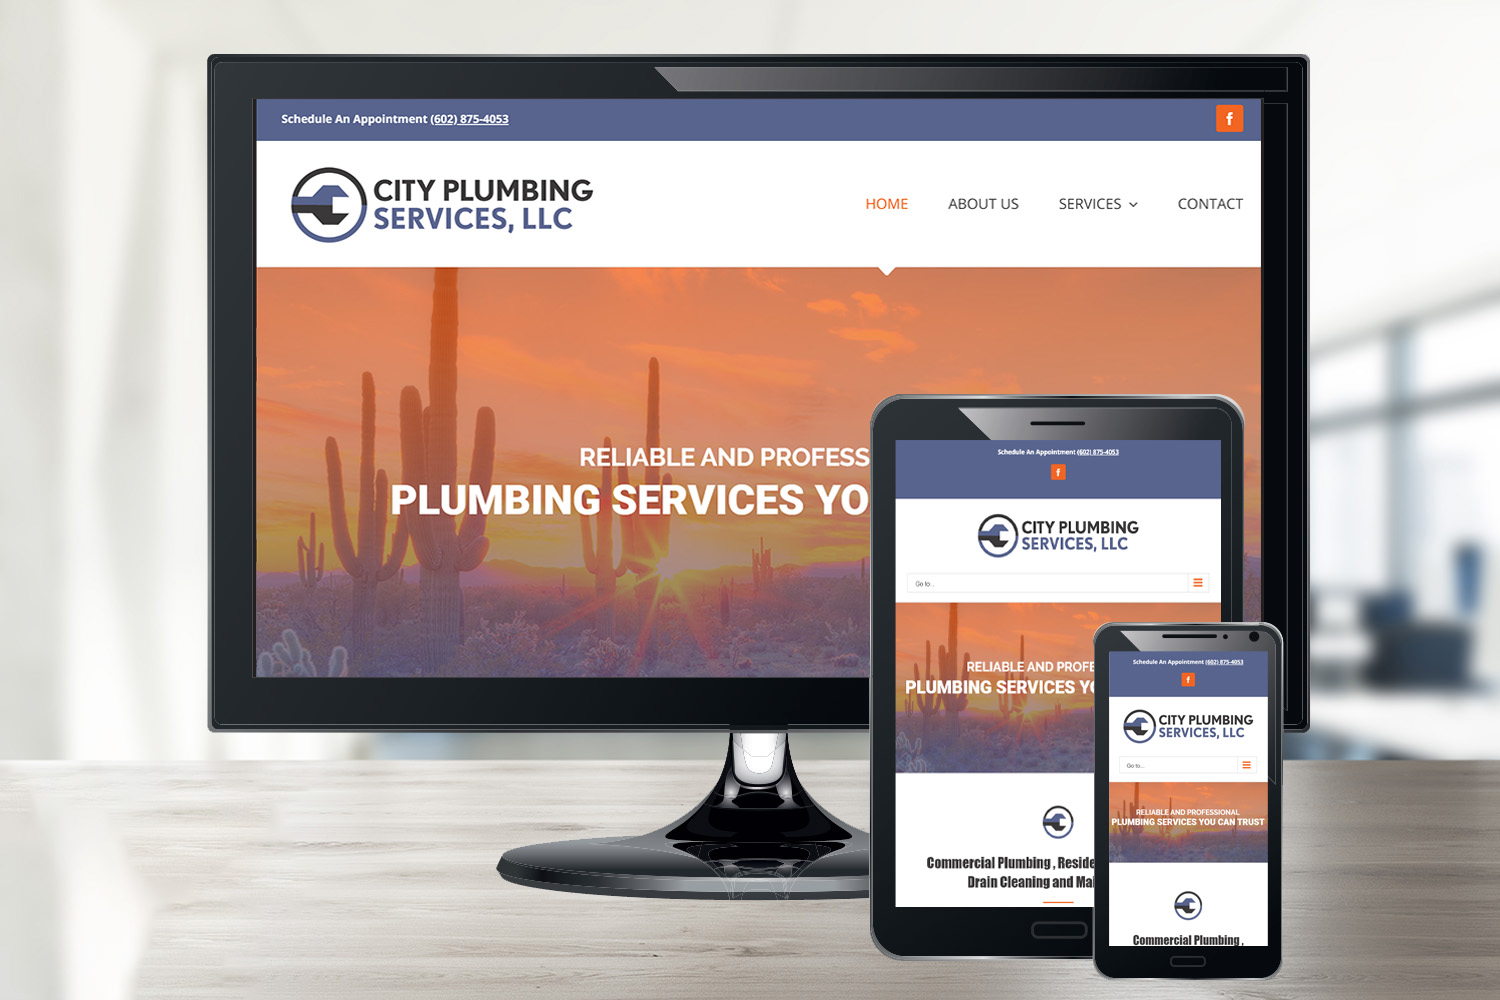 City Plumbing Services' Small Business Website in Cave Creek, AZ